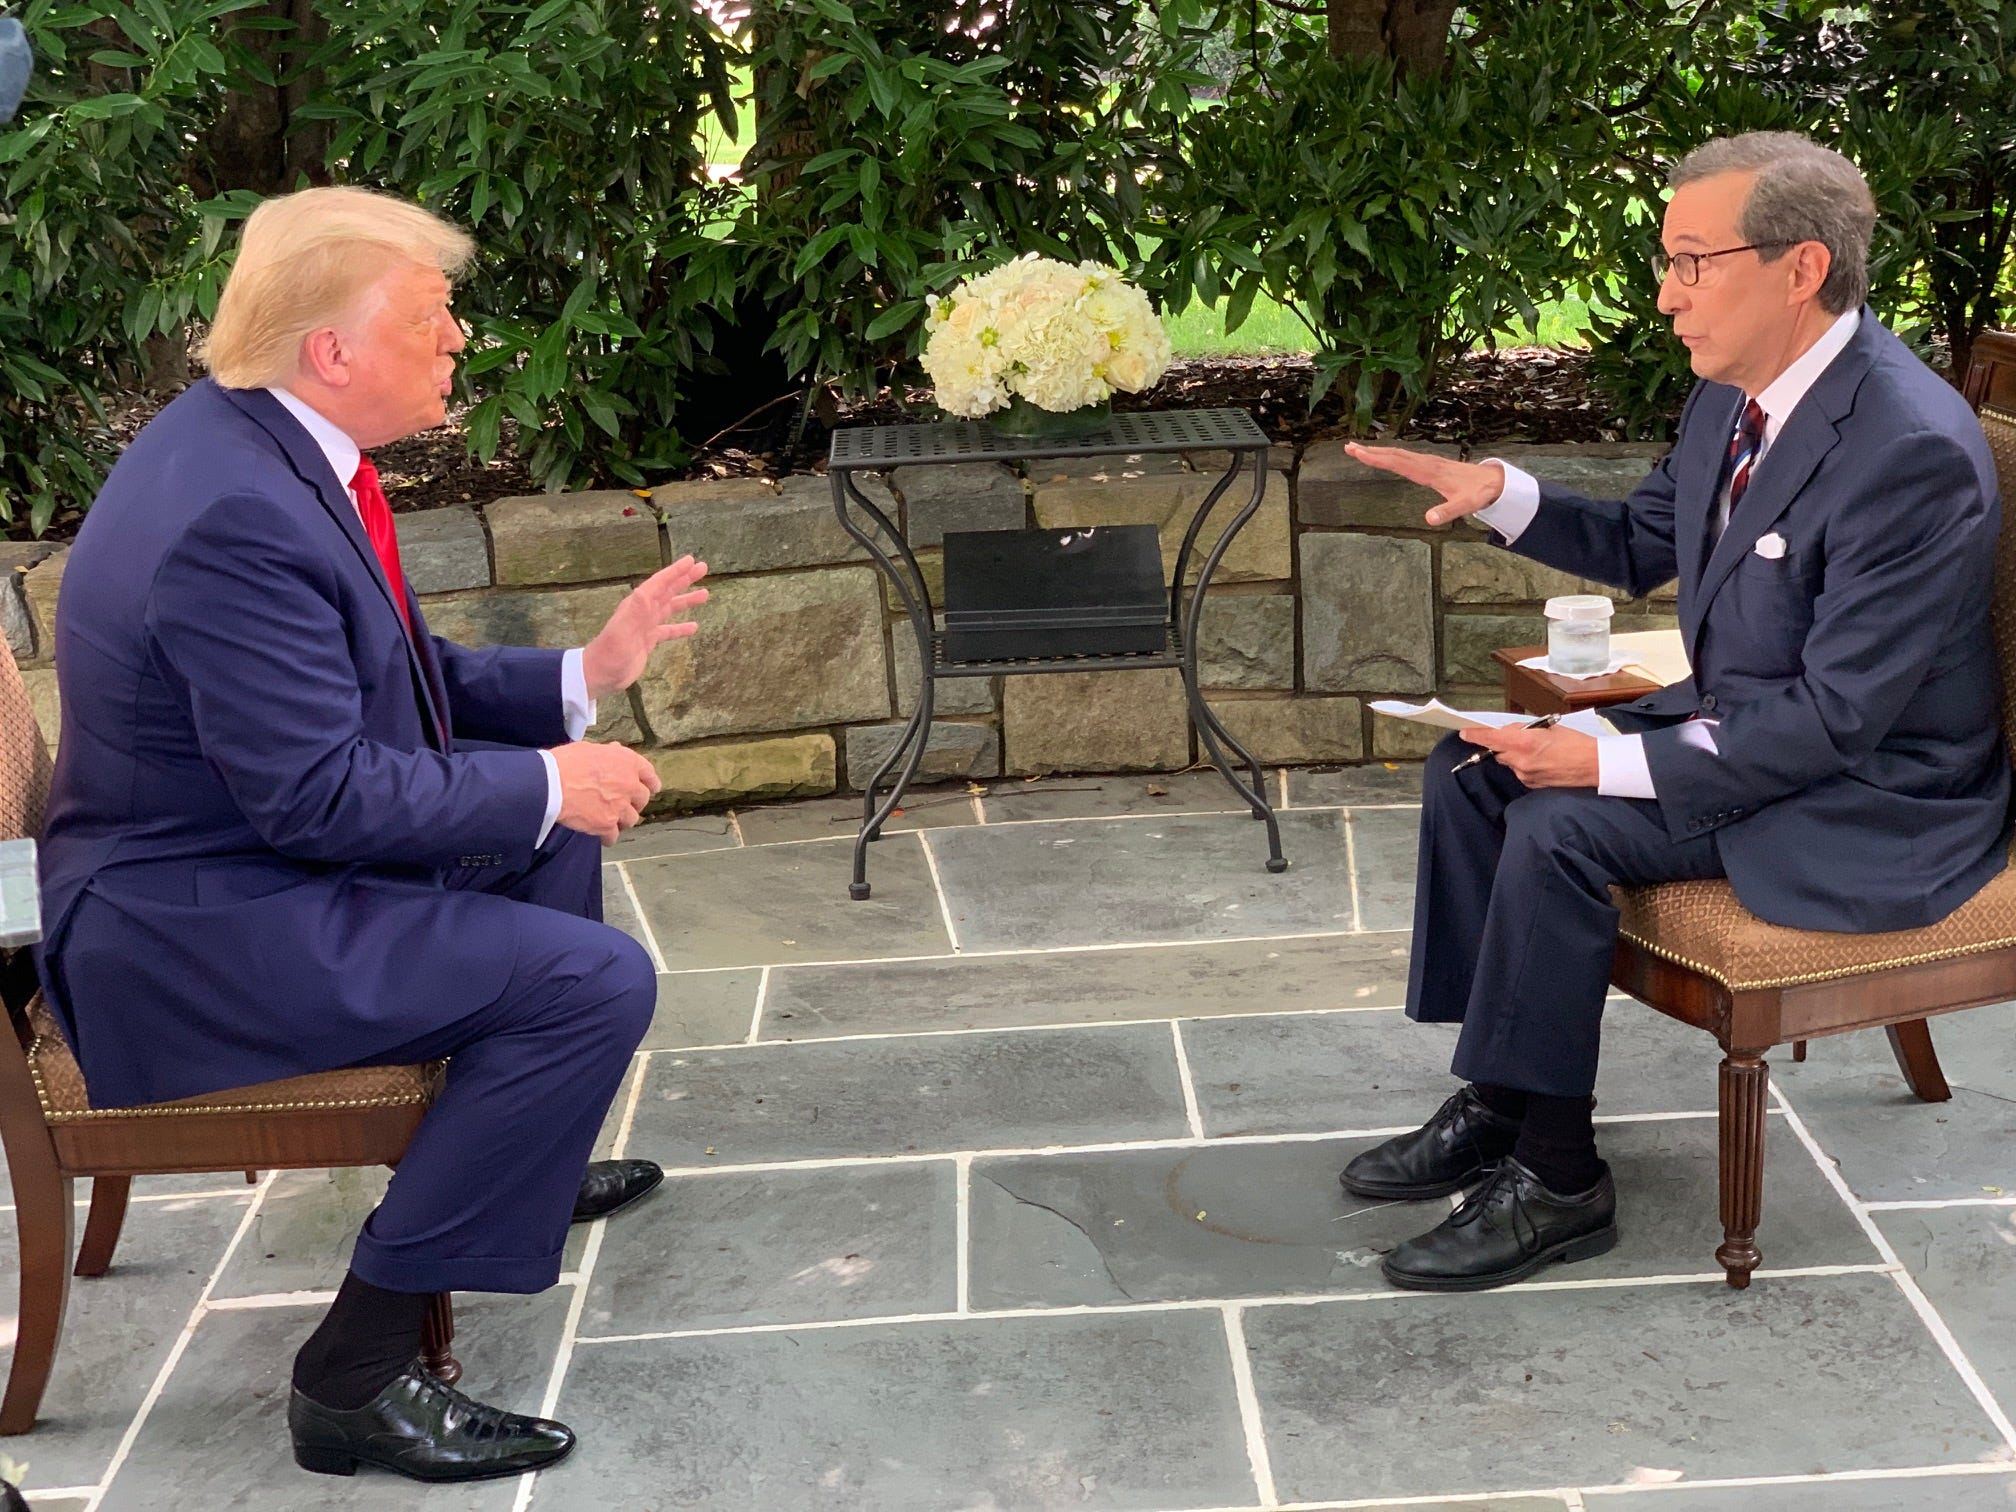 Fox News Chris Wallace Interview With Donald Trump Was Tough And Fair